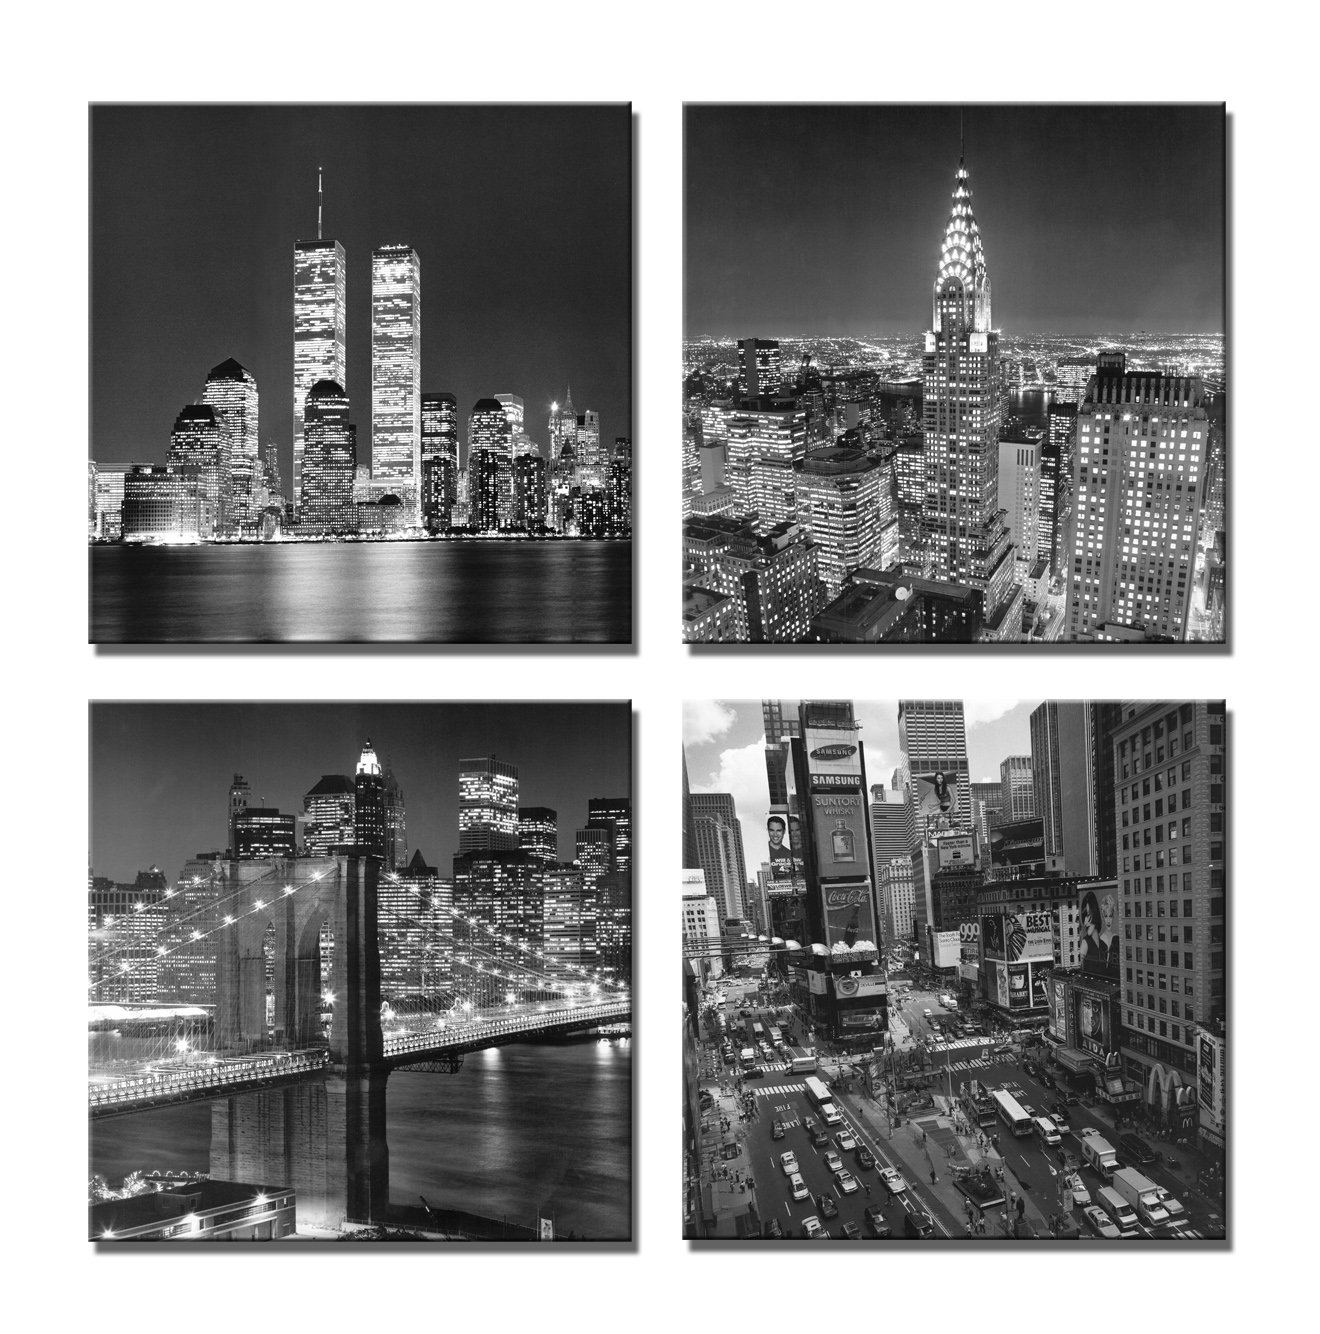 Amazon com yin art new york city canvas print black and white brooklyn bridge empire state building wall art modern giclee artwork 30x30cm posters